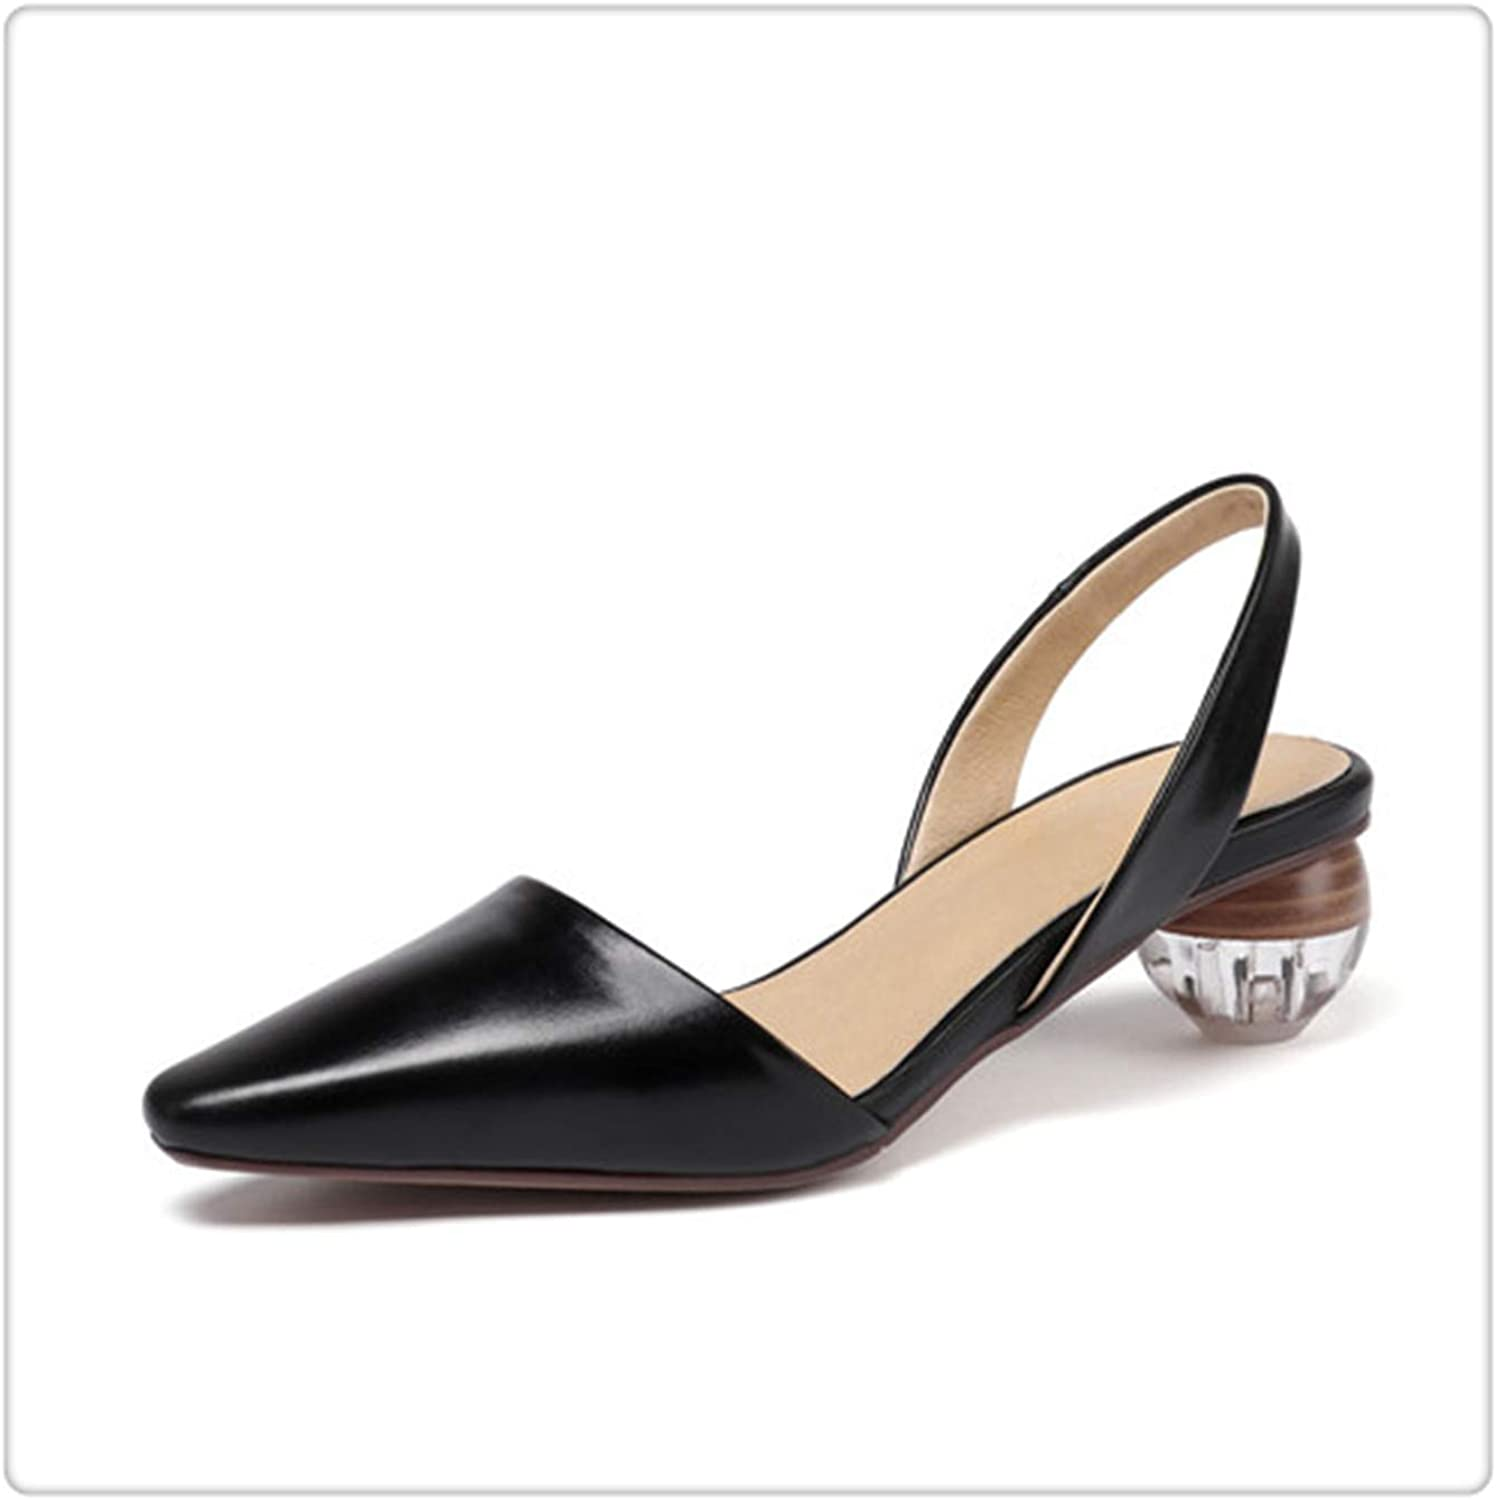 Yyixianma Women High Heel shoes Slingbacks Pumps Lady Sexy Pointed Toe Work Office shoes Mixed colors Round Heel Handmade LLI01 MUYISEXI Black 9